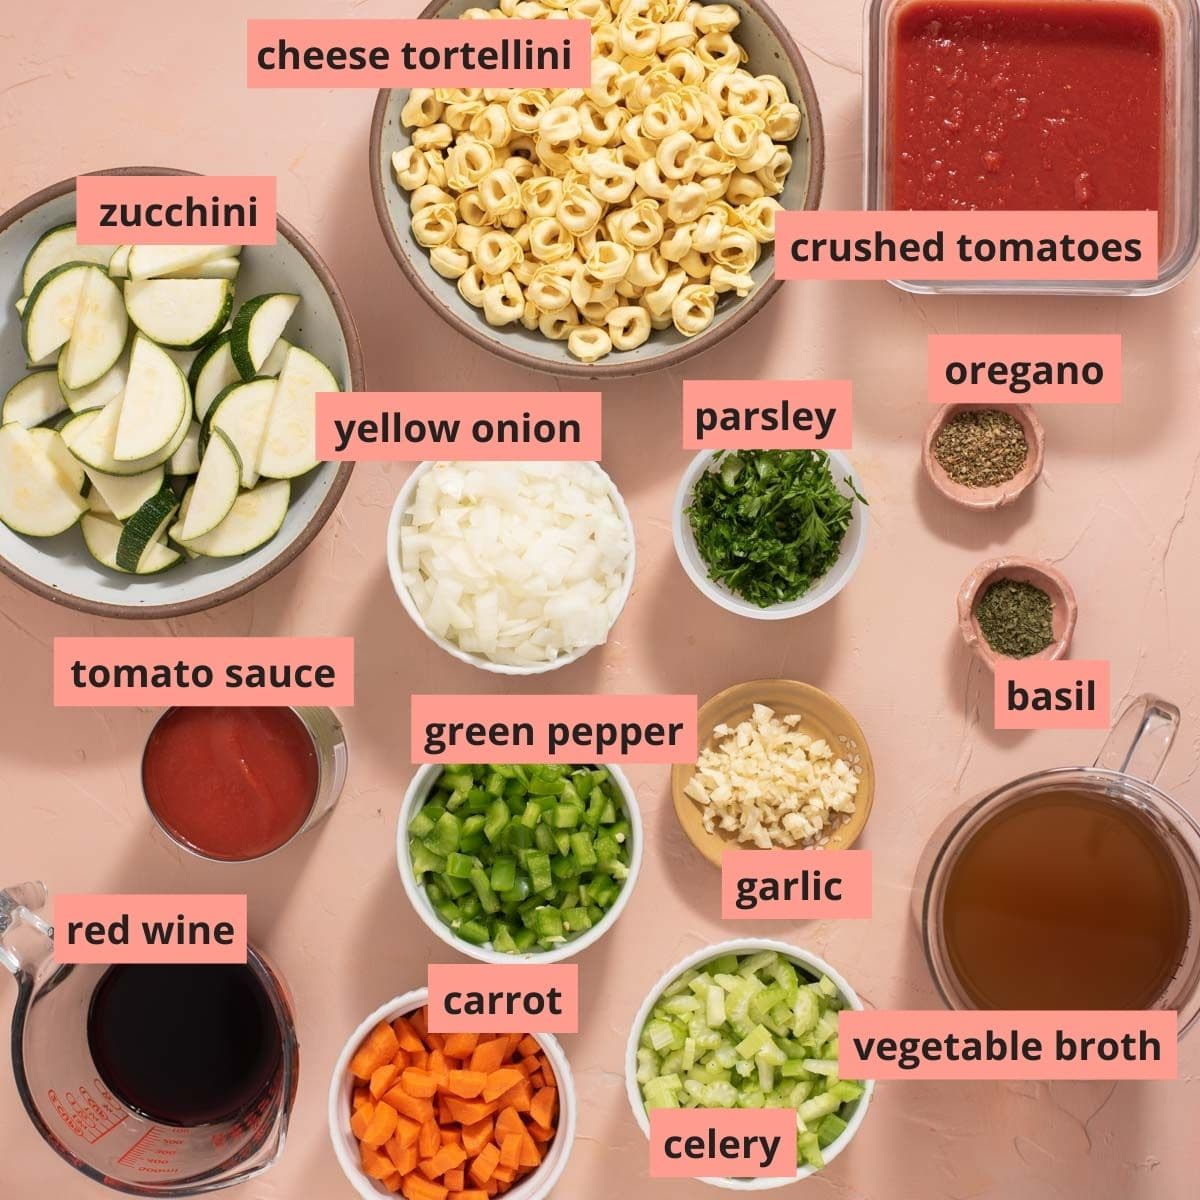 Labeled ingredients used to make tortellini soup